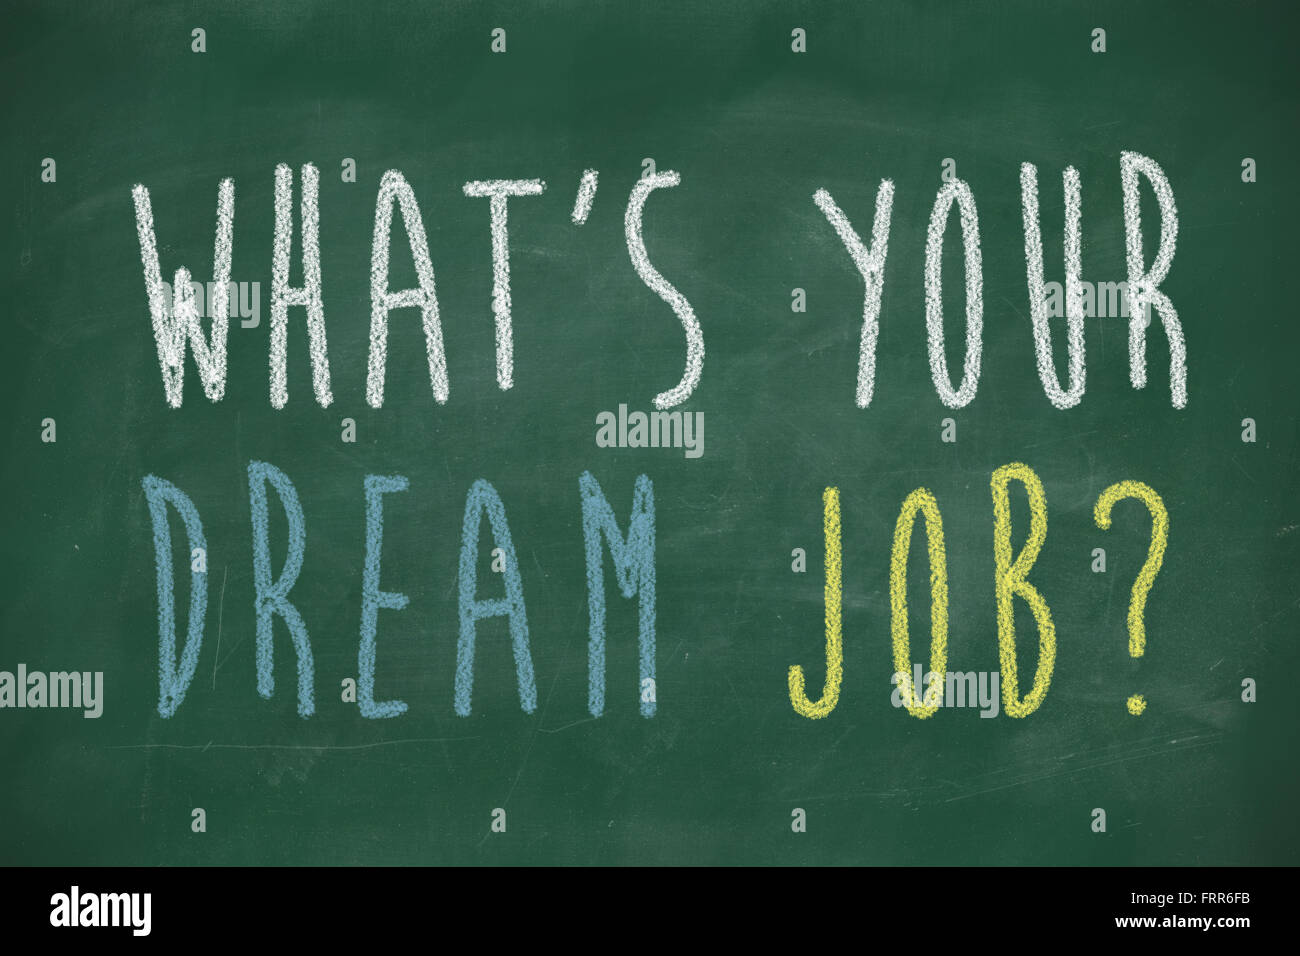 what s your dream job phrase handwritten on chalkboard stock photo stock photo what s your dream job phrase handwritten on chalkboard